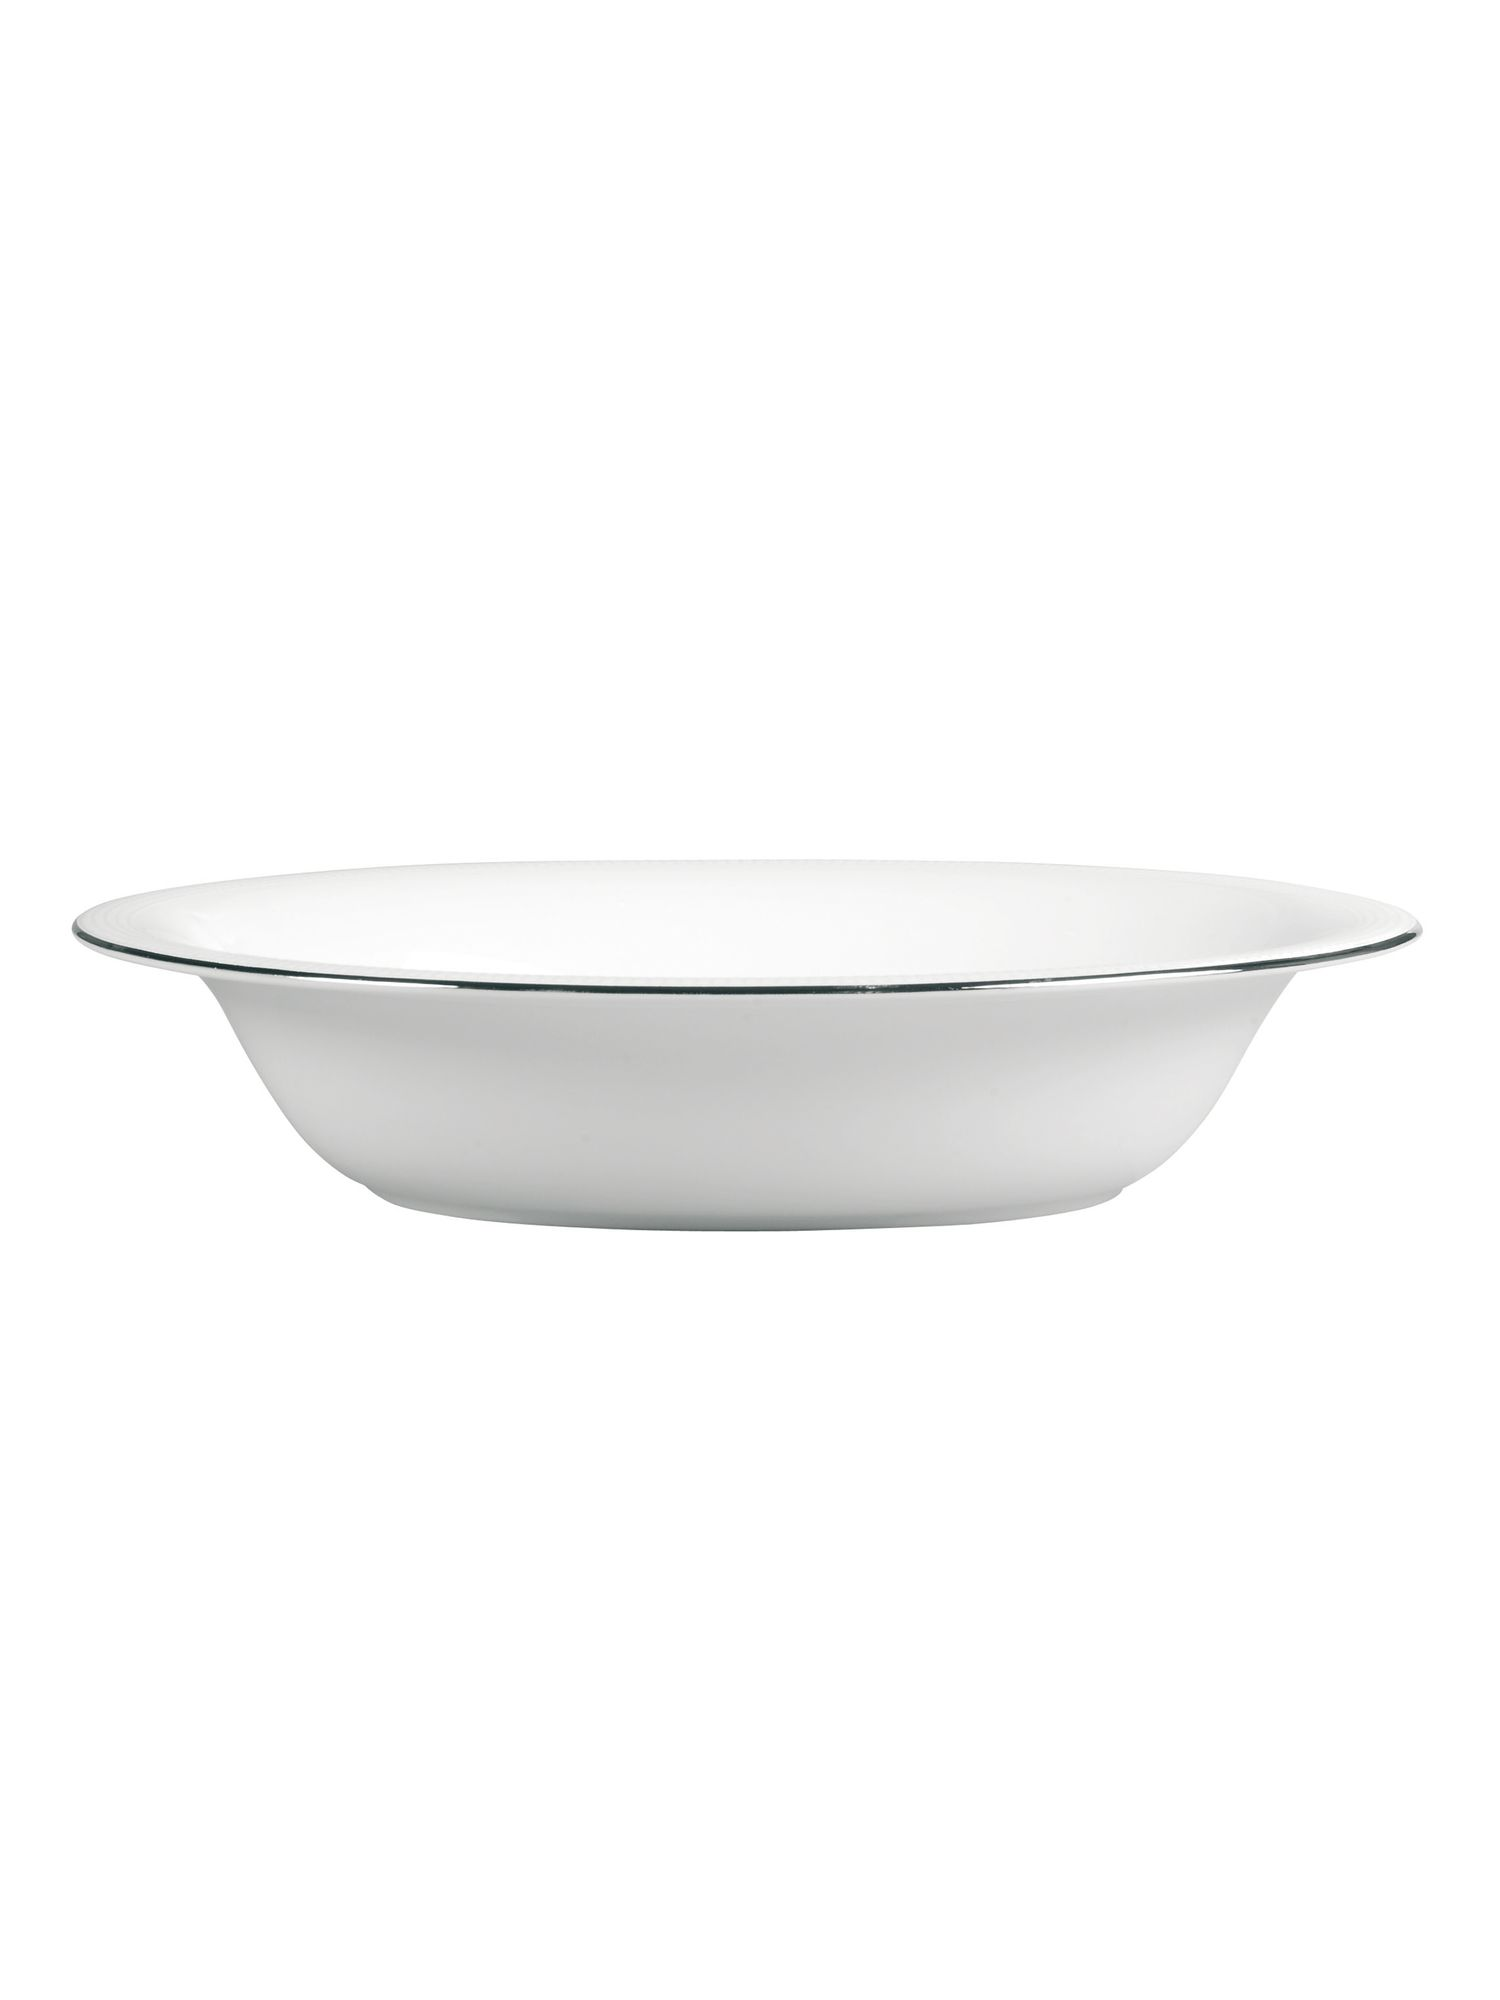 Vera Wang blanc sur blanc open vegetable dish